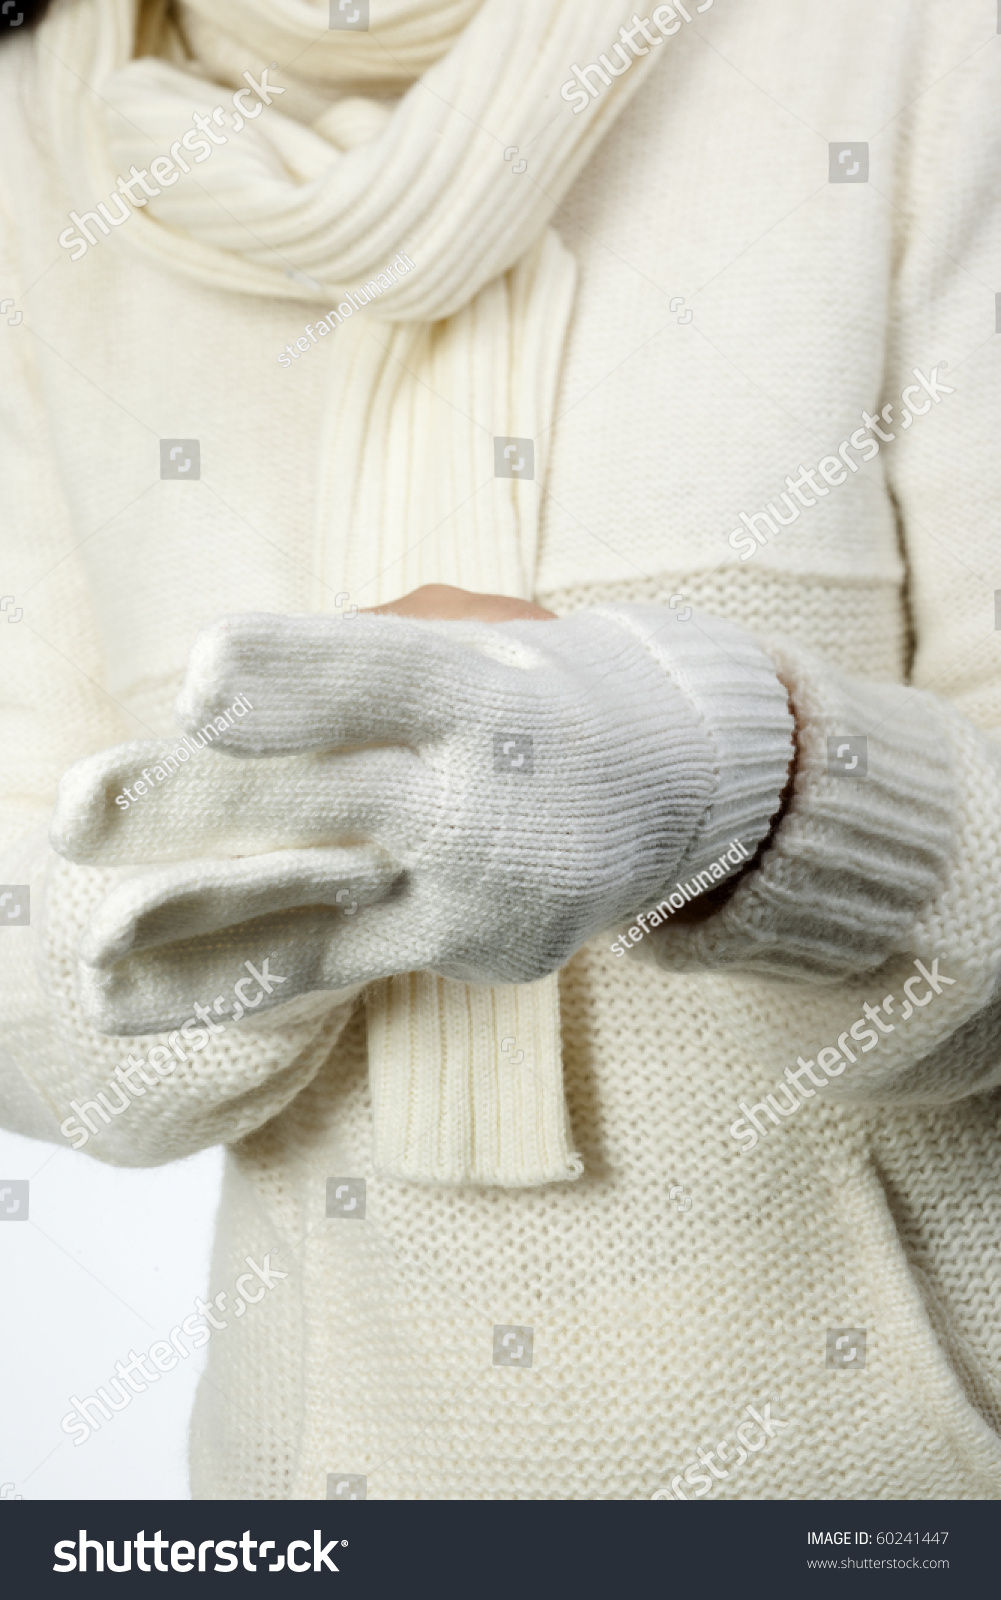 Young Woman Soft White Sweater Wearing Stock Photo 60241447 ...